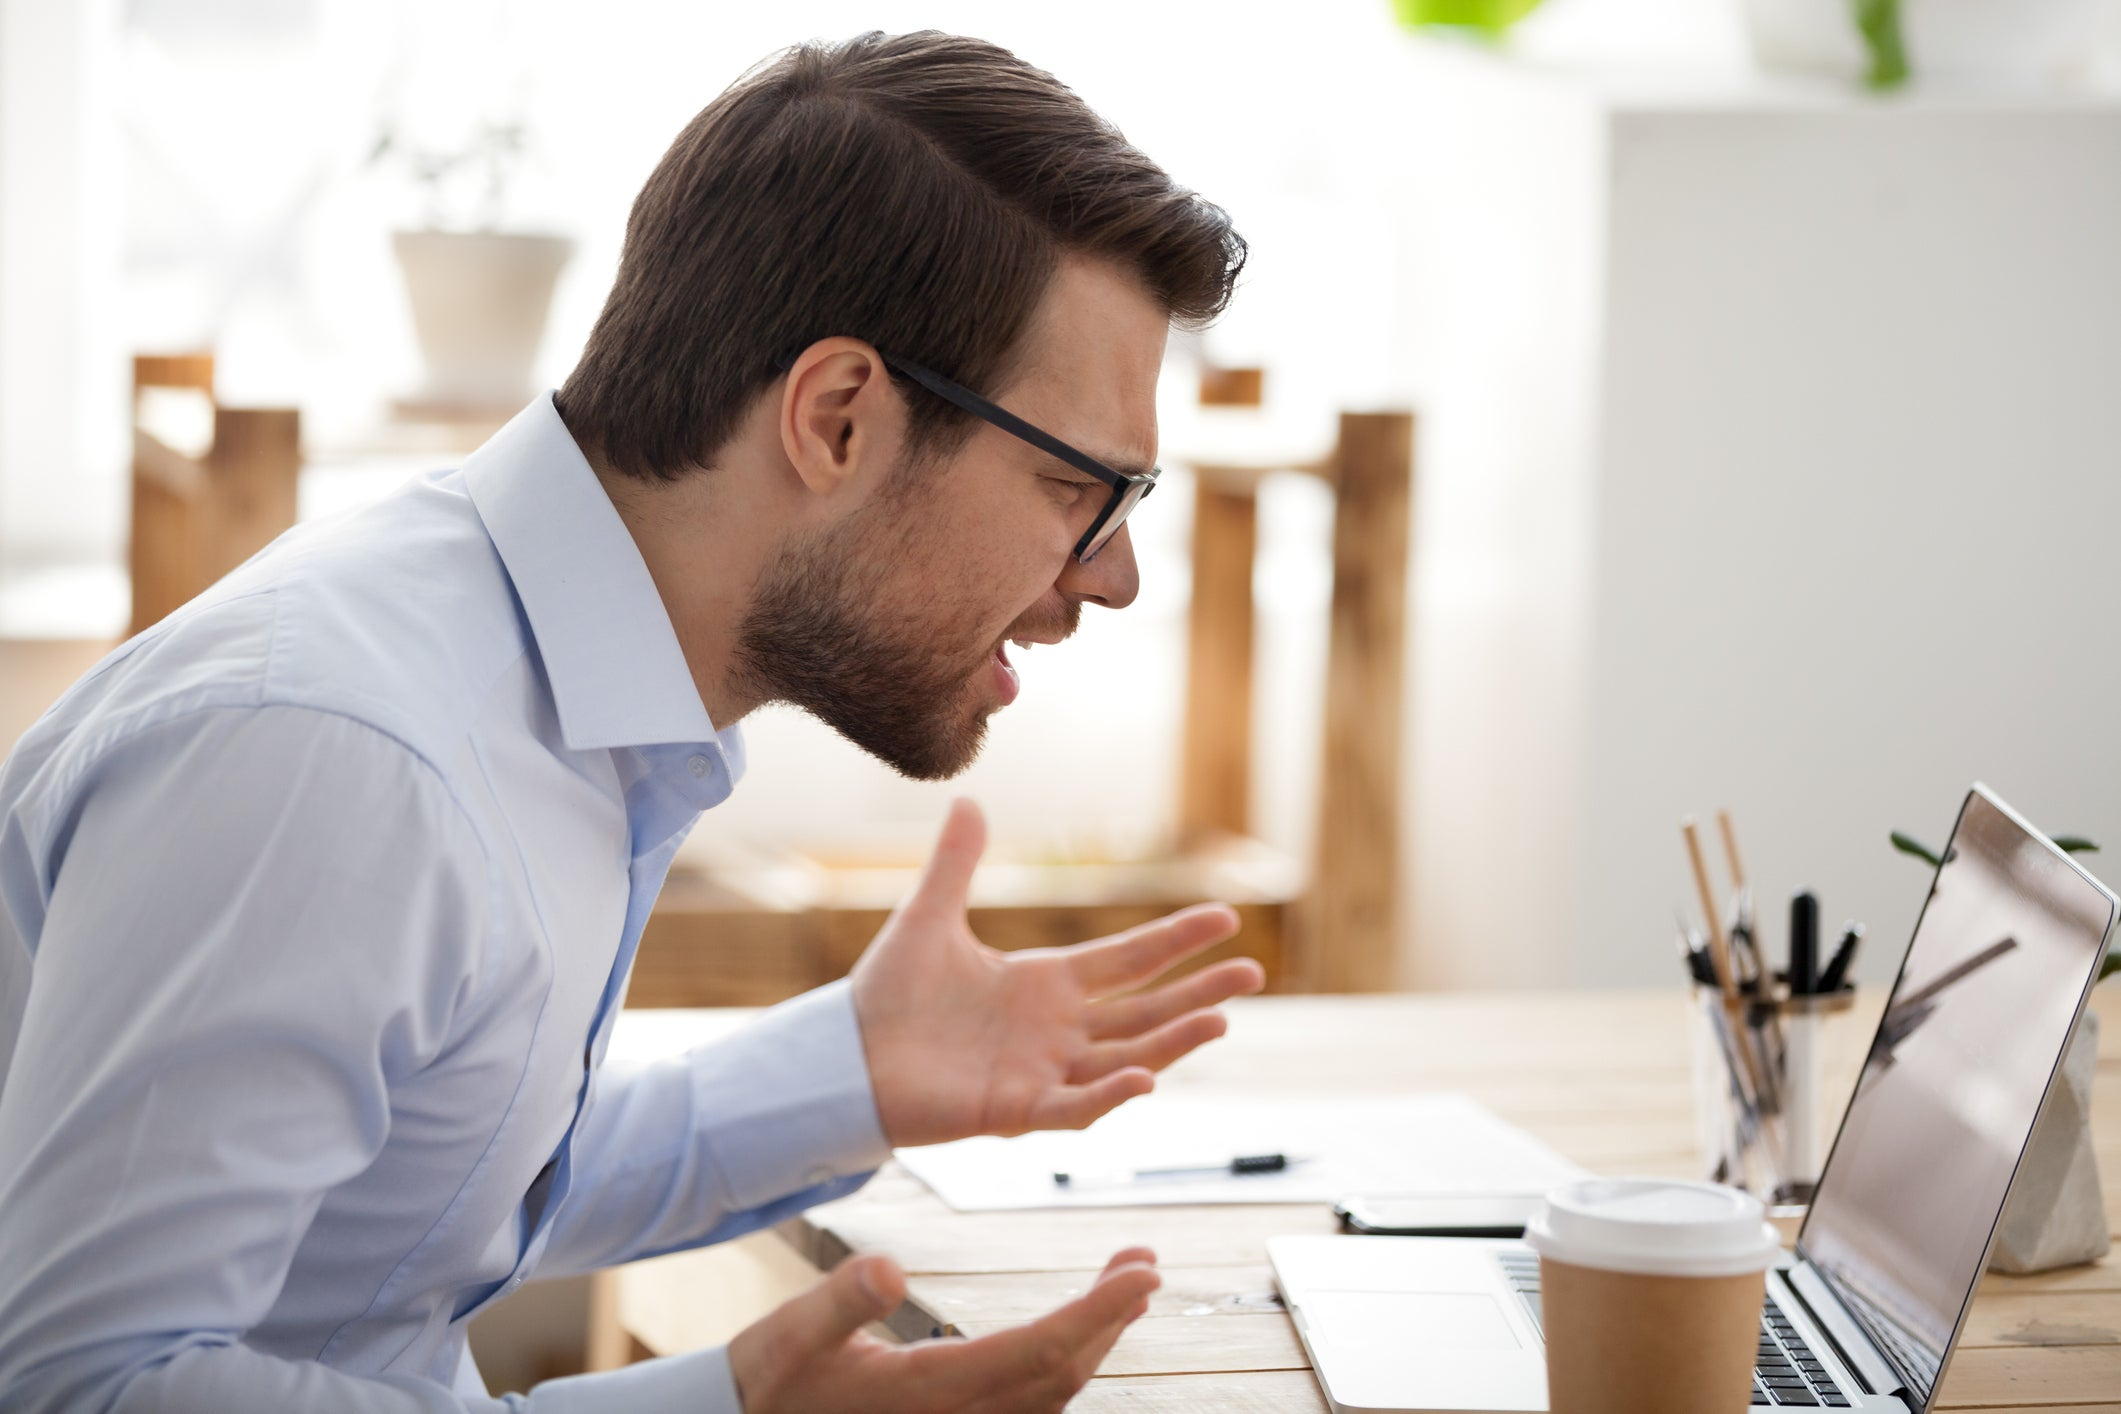 Man looking at laptop computer holding his hands up as if he's frustrated